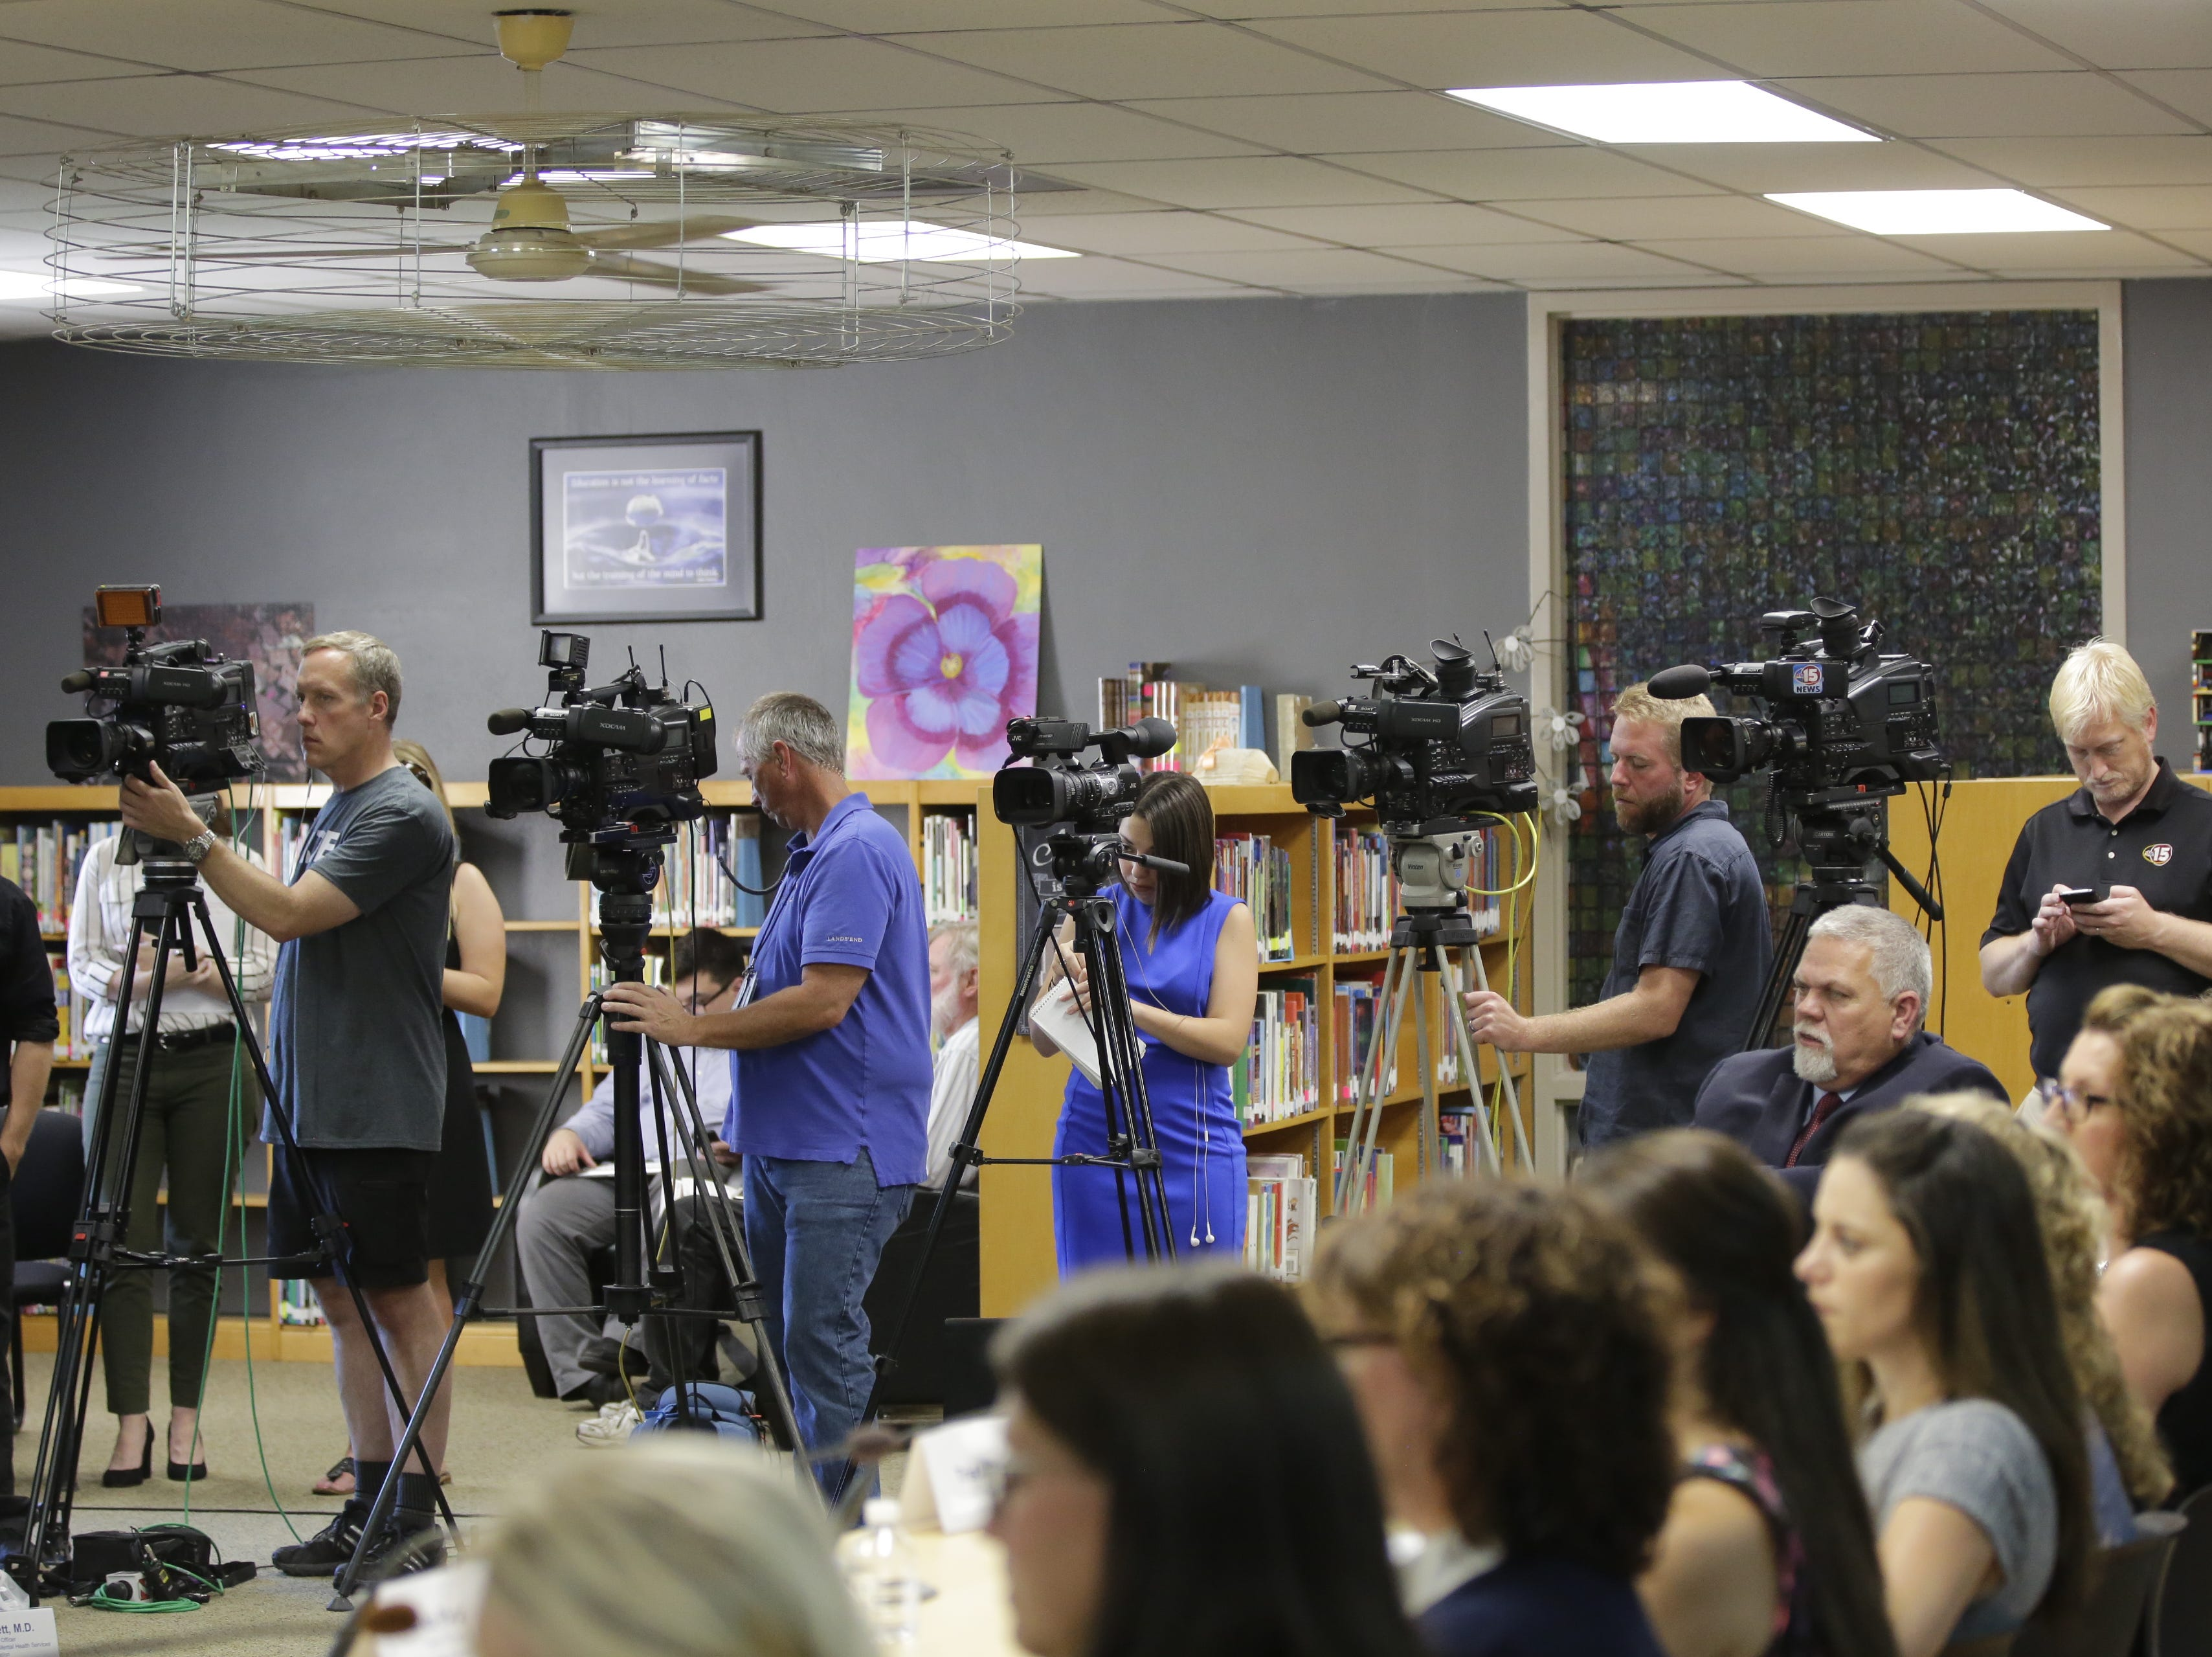 TV cameras are set up at Adams-Friendship Middle School in Adams, Wis. as U.S. Secretary of Education Betsy DeVos appears in the school's library Tuesday, July 24, 2018.